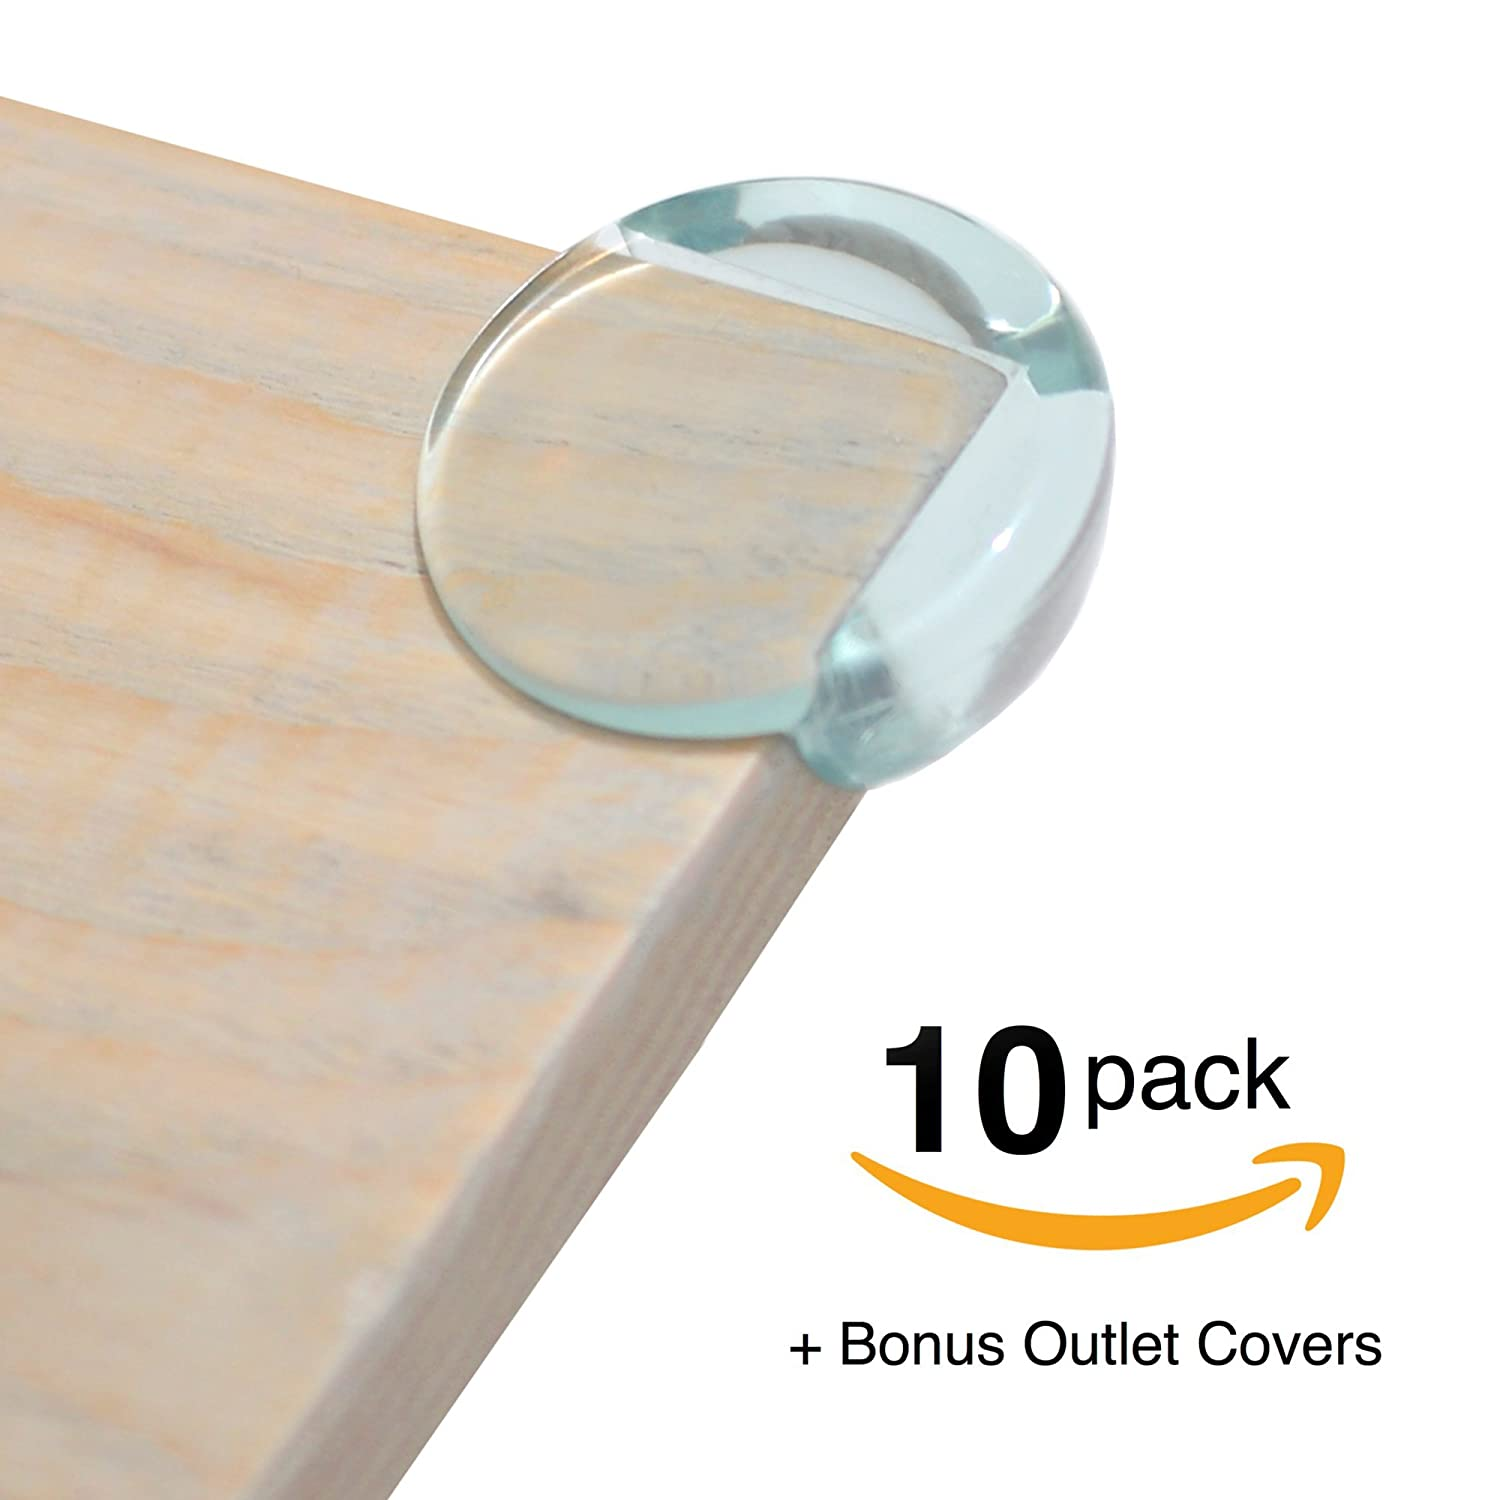 FitFabHome 10 Pack Premium Clear Corner Guards | BONUS ELECTRICAL OUTLET COVERS 6 PACK | Strong 3M Brand Adhesive | Baby-Proof And Protect Your Children From Sharp Corners On Tables, Desks, Furniture